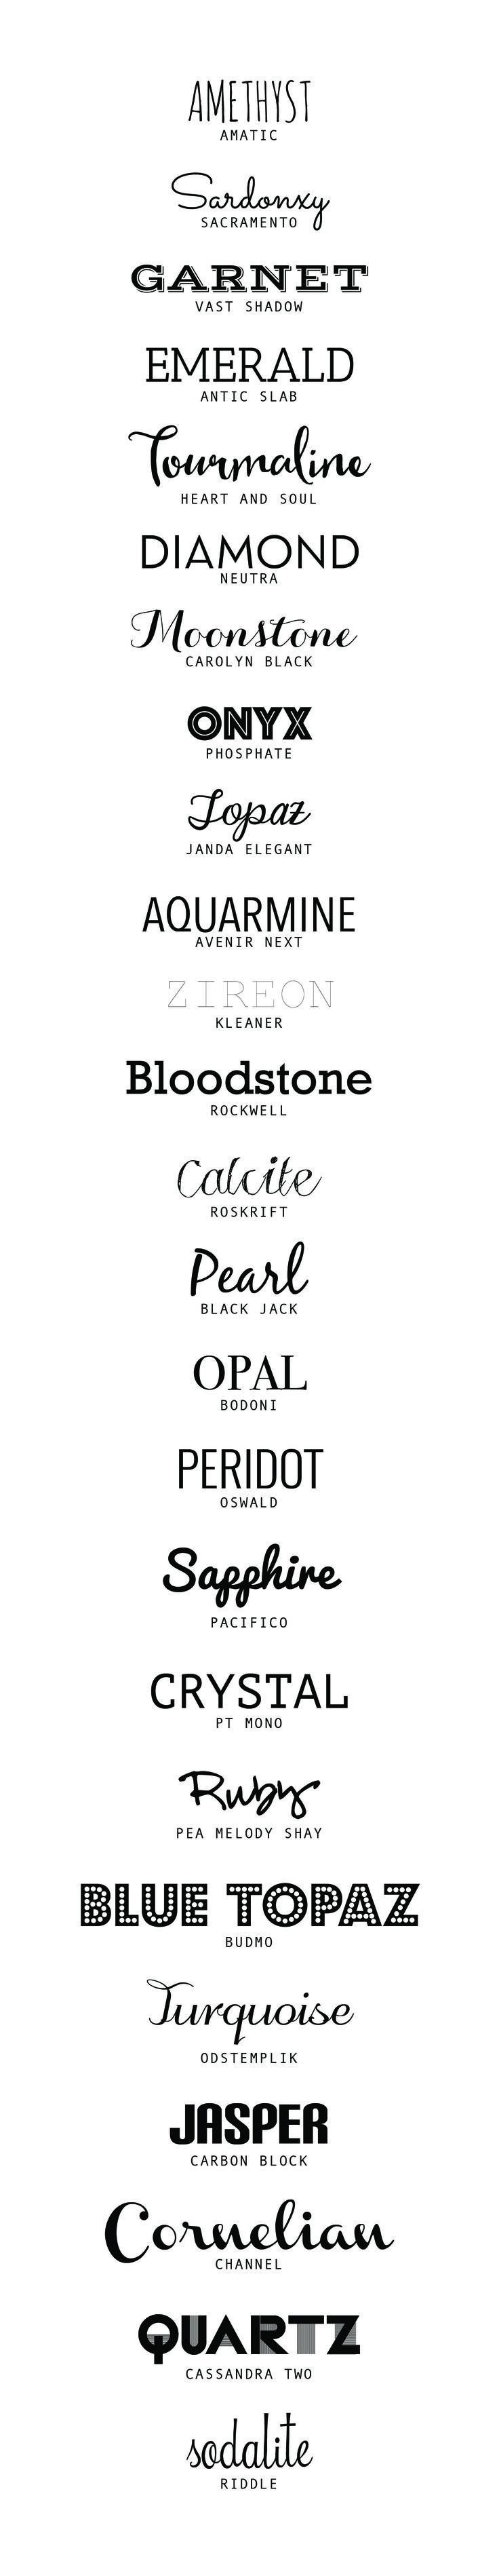 25 of the best Free Fonts | desireedreszer.com